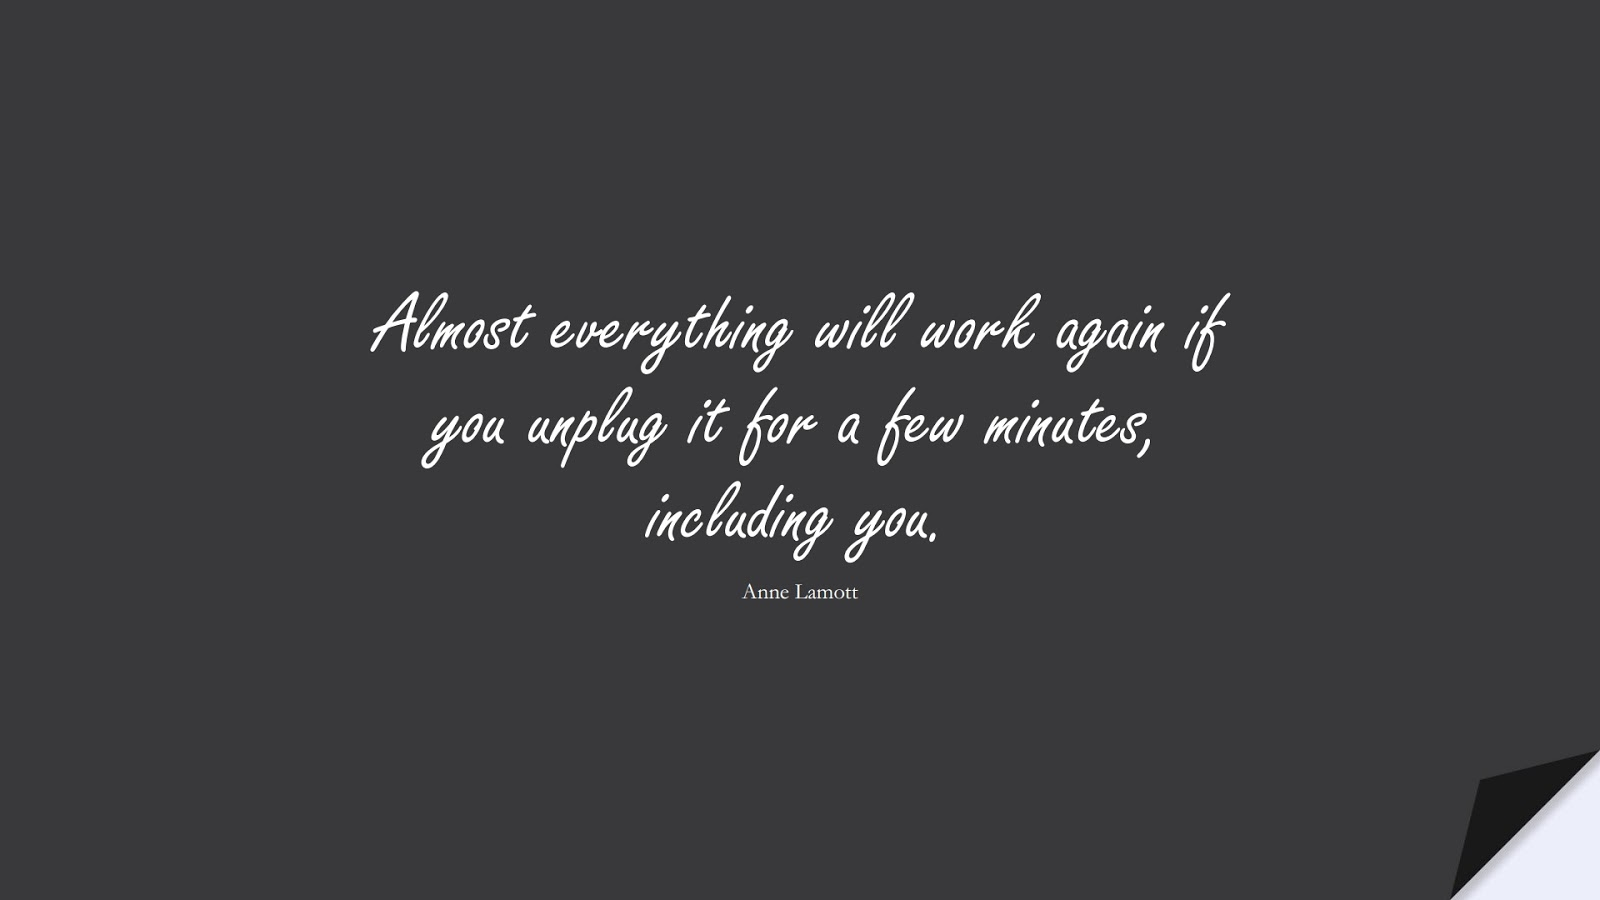 Almost everything will work again if you unplug it for a few minutes, including you. (Anne Lamott);  #EncouragingQuotes